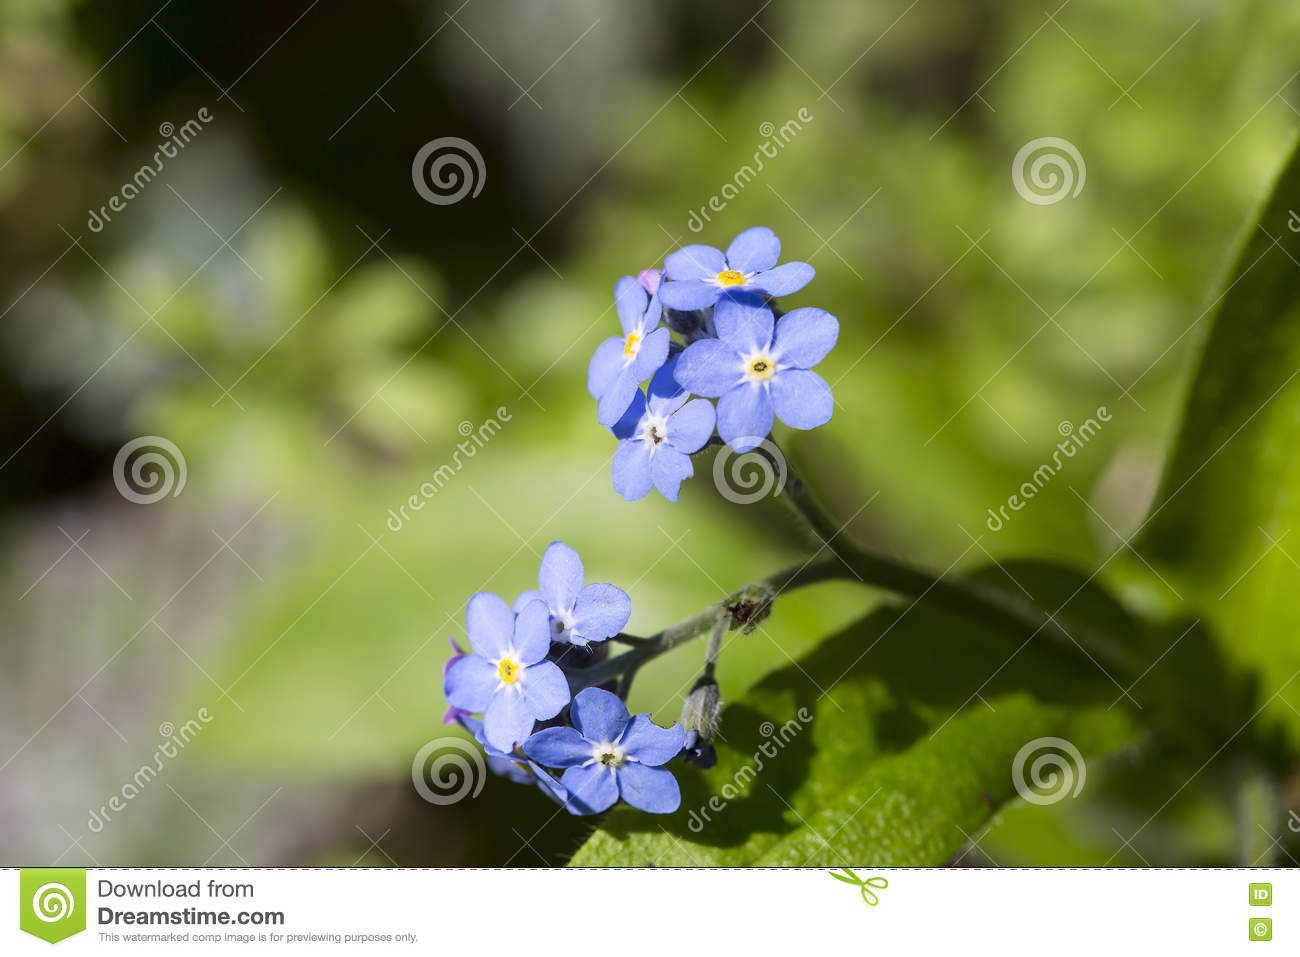 Forget Me Not Stock Photo Image Of Plant Center Appear 71002116